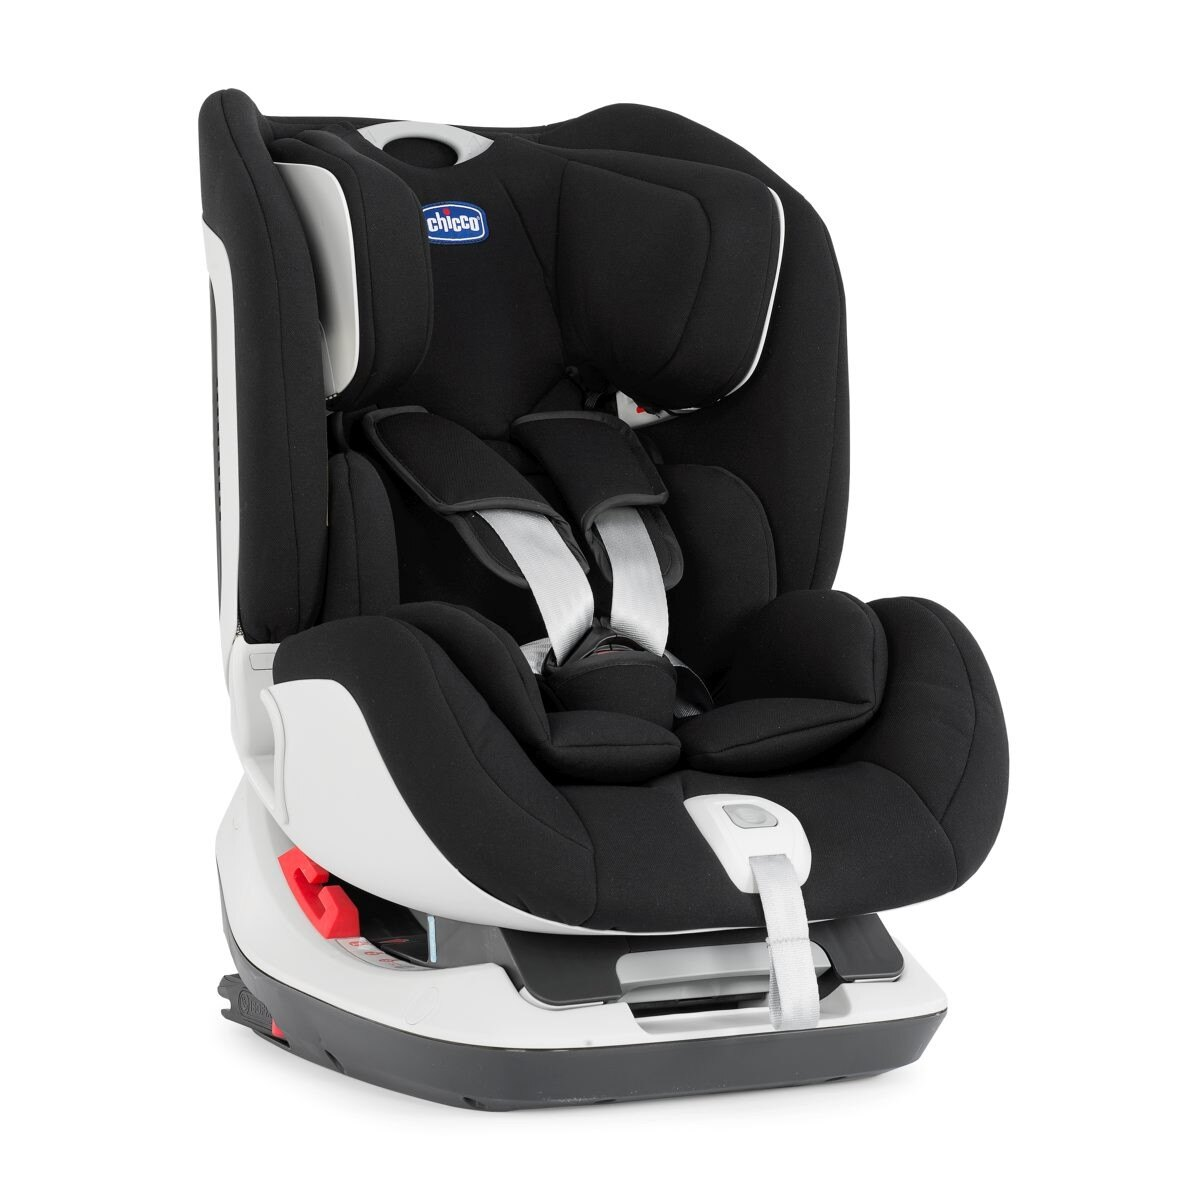 *babygo*Chicco seat up 012 isofix 安全汽座